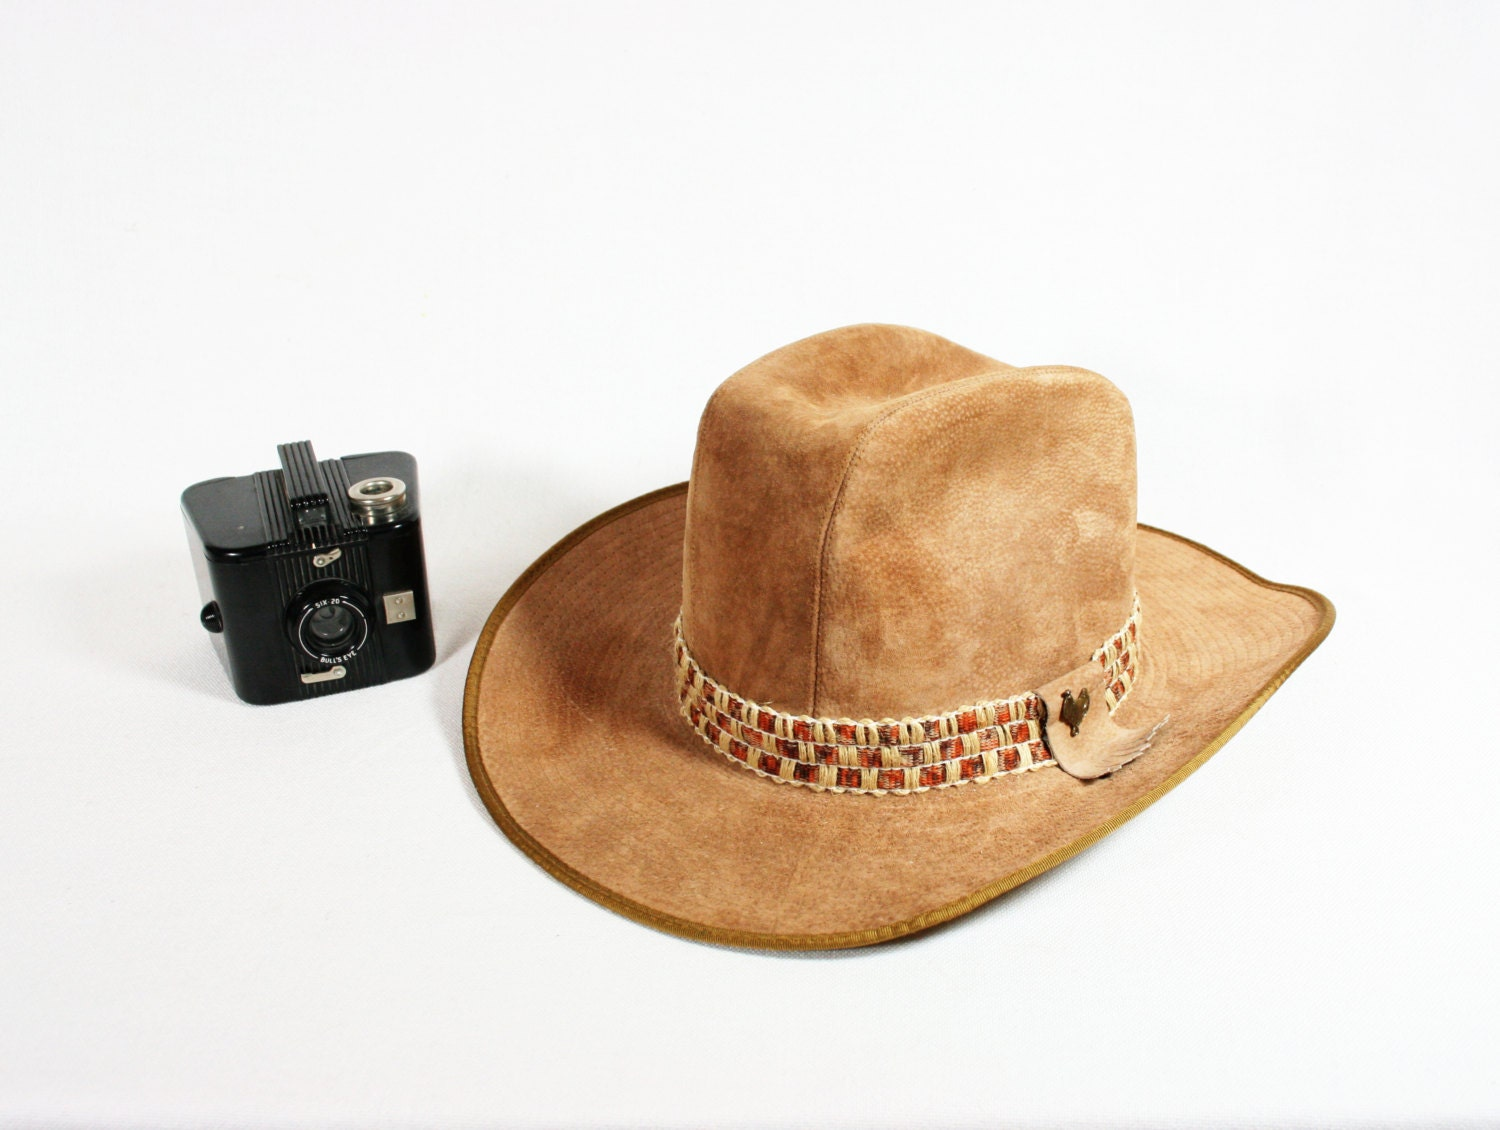 Best prices on Suede hat men in Men's Hats online. Visit Bizrate to find the best deals on top brands. Read reviews on Clothing & Accessories merchants and buy with confidence.